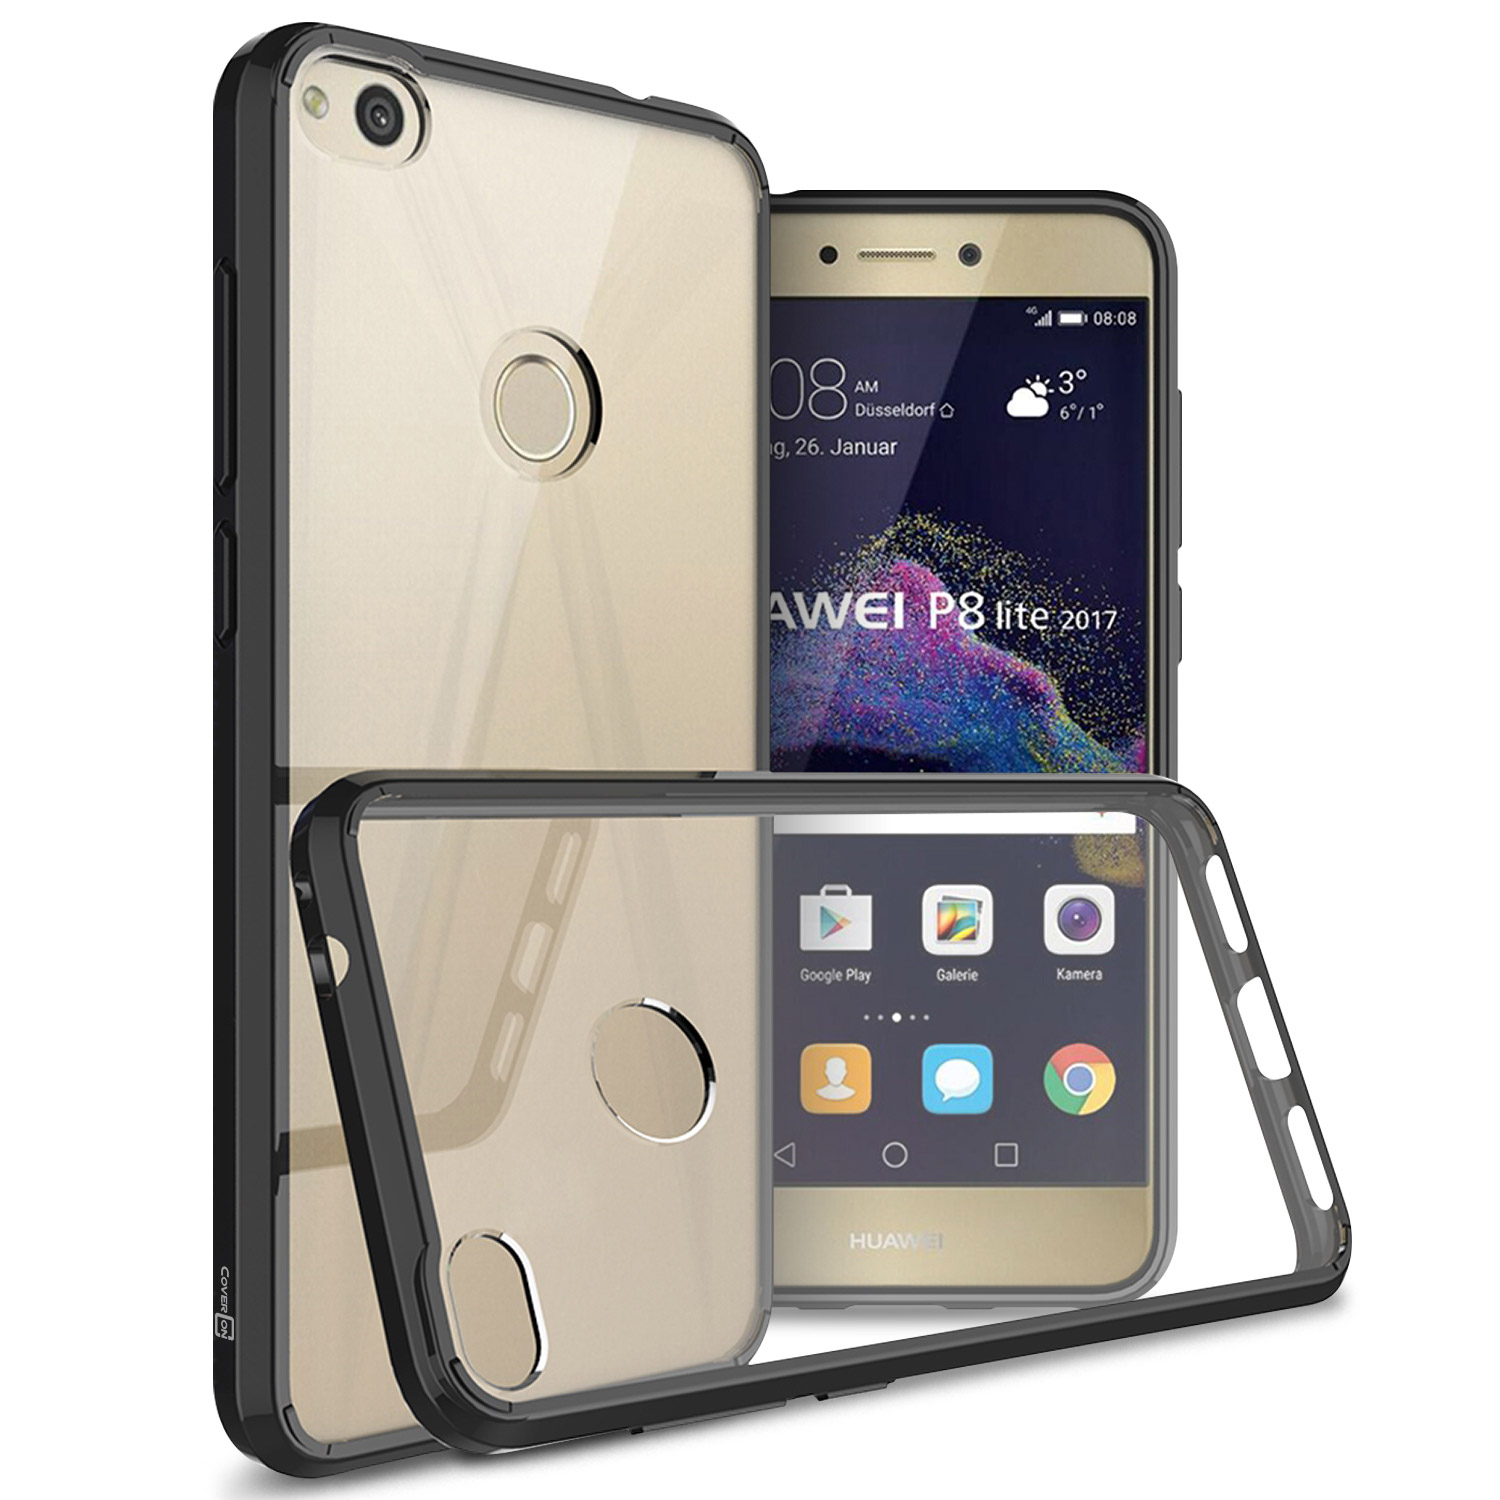 low priced b523b 4e760 Details about Black / Clear Hybrid TPU Bumper Hard Back Cover Case for  Huawei P8 Lite (2017)